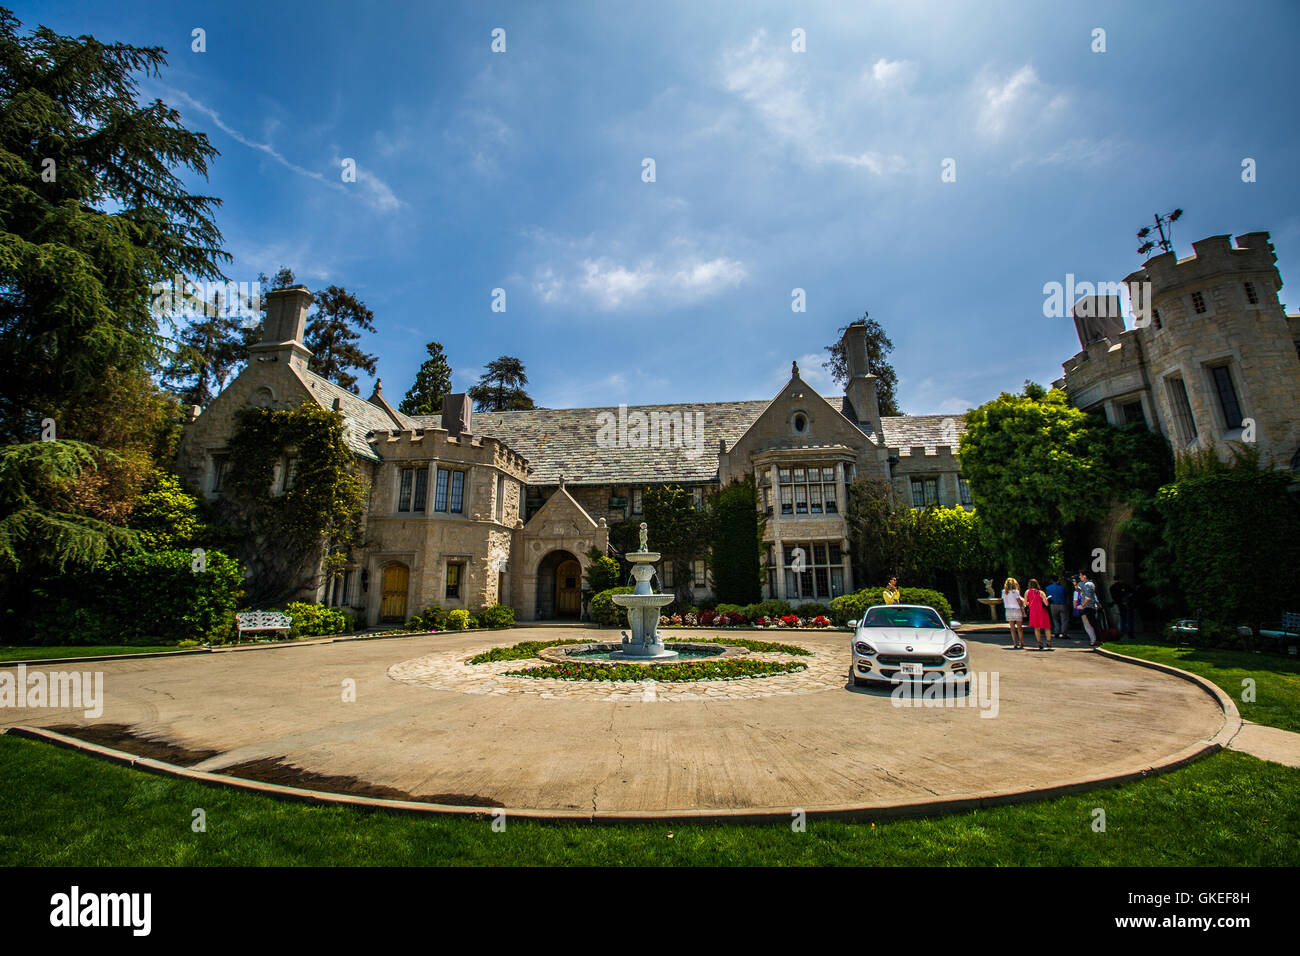 The Playboy Mansion Has Found A Buyer: Playmates Mansion Stock Photos & Playmates Mansion Stock